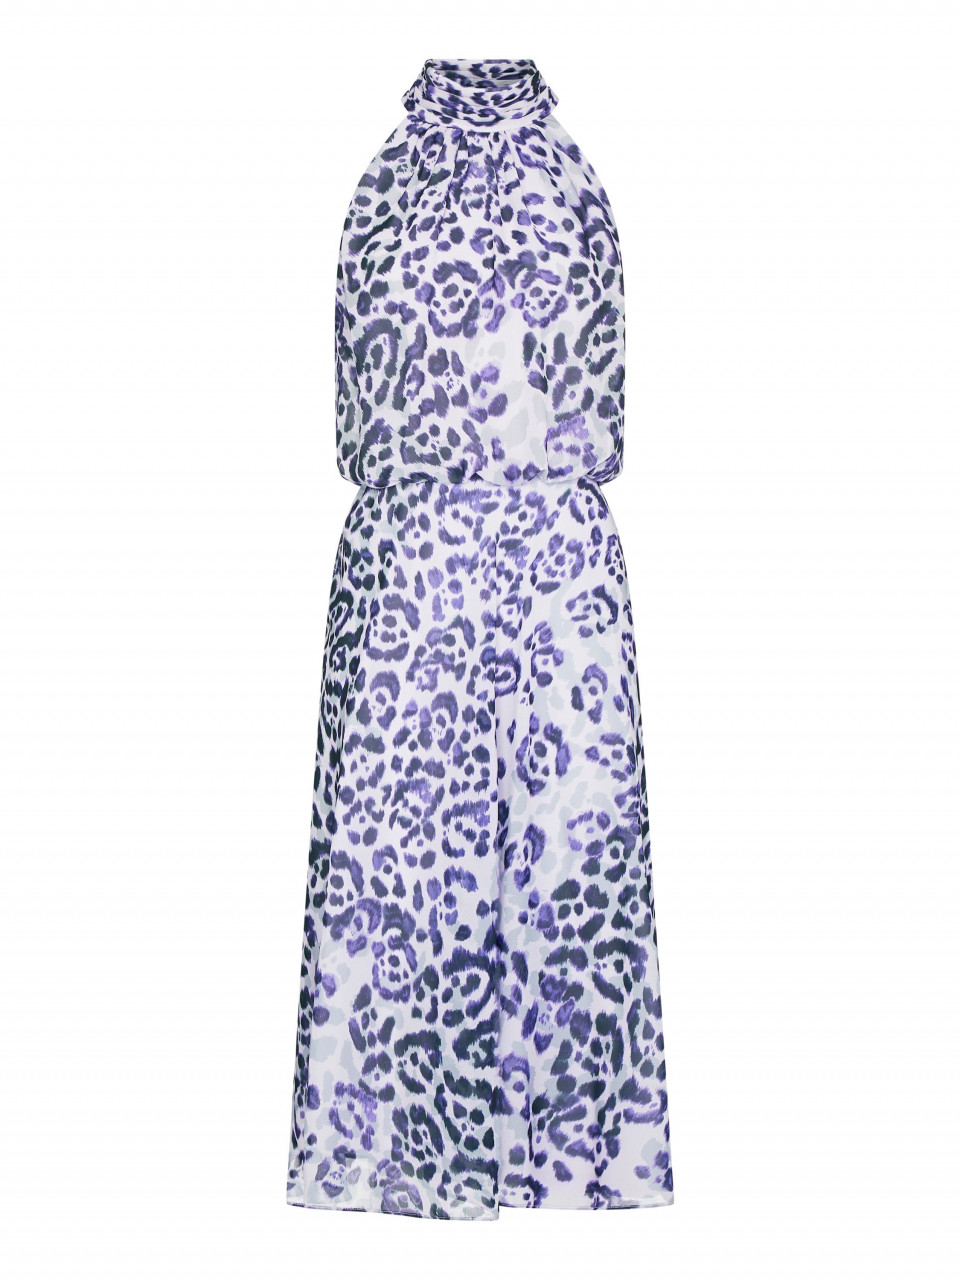 Watercolor leopard bias dress